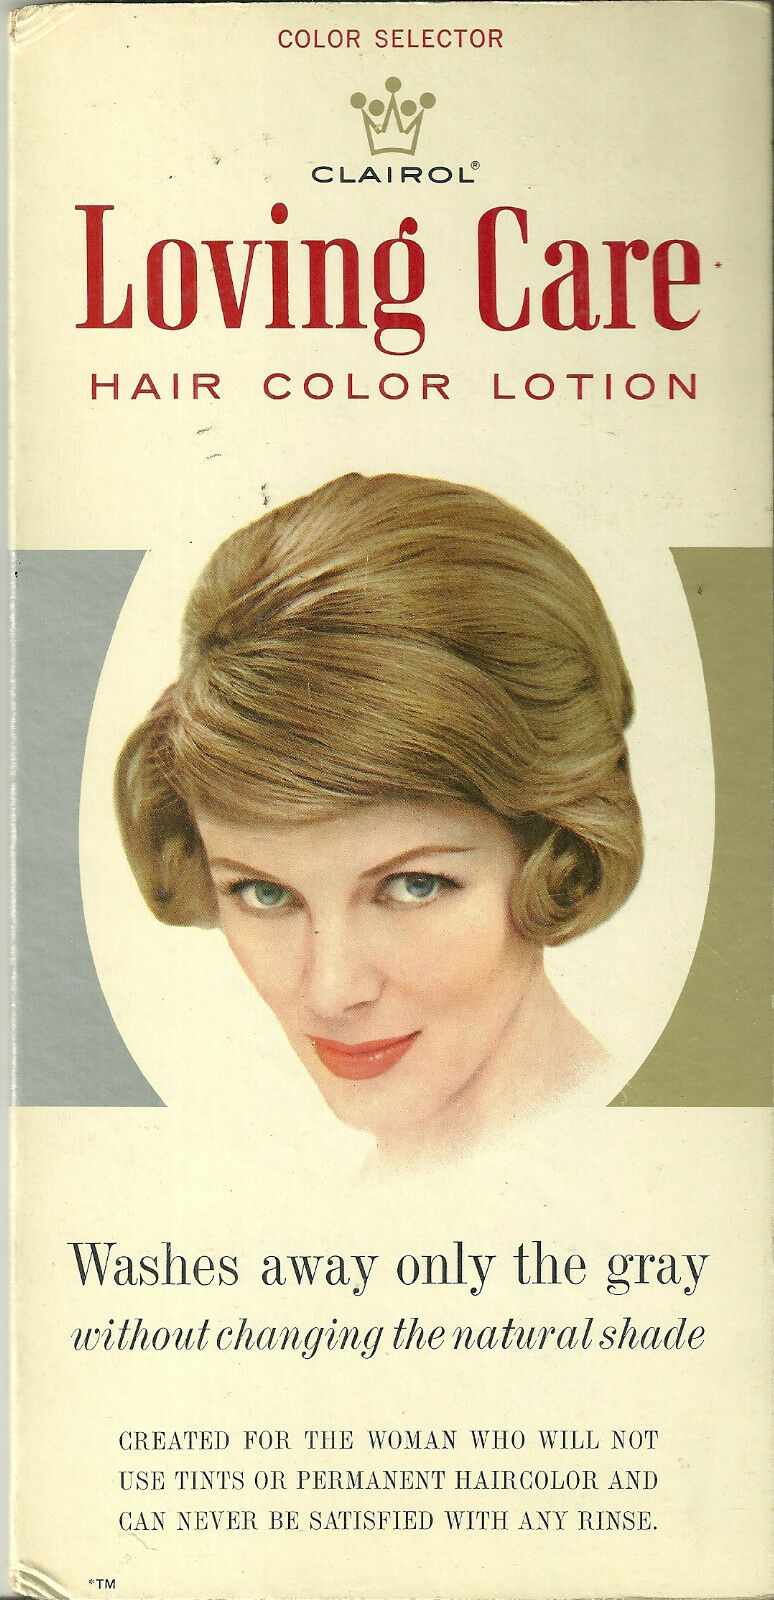 Clairol Loving Care Hair Color Lotion Advertising Vintage Hairstyles 1960 2000